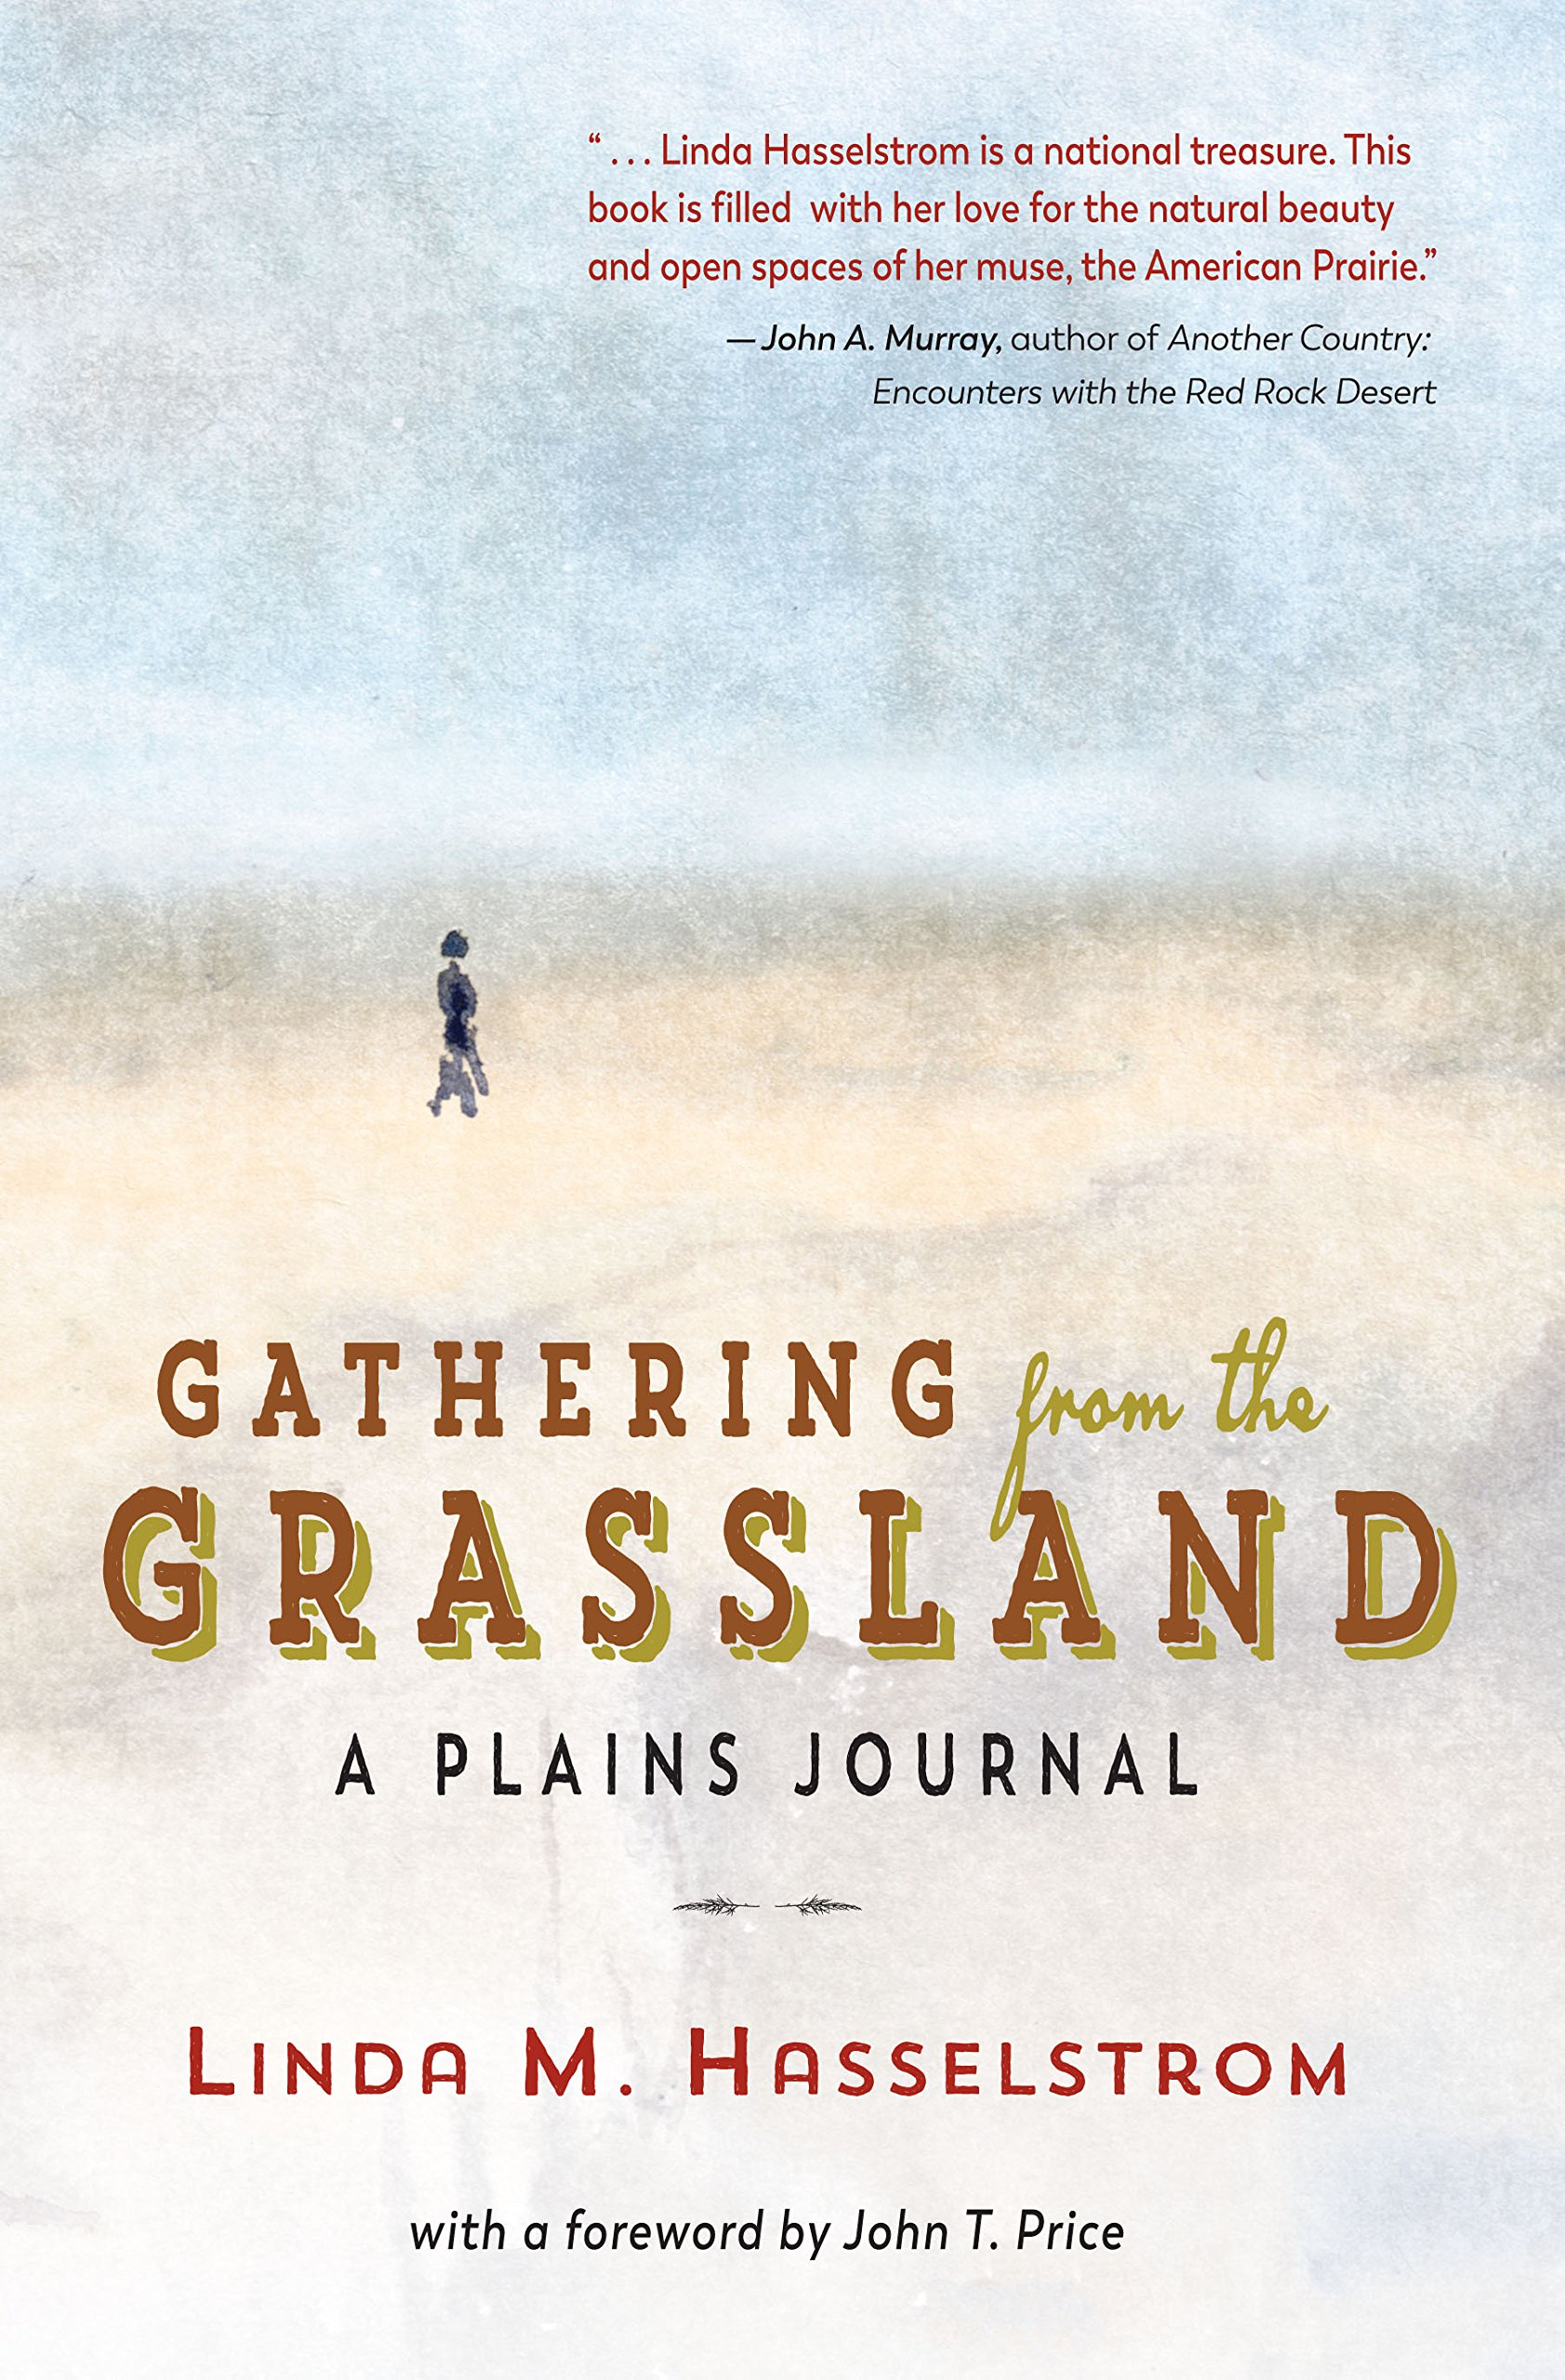 Gathering from the grassland a plains journal linda m hasselstrom gathering from the grassland a plains journal linda m hasselstrom 9781937147129 amazon books fandeluxe Choice Image